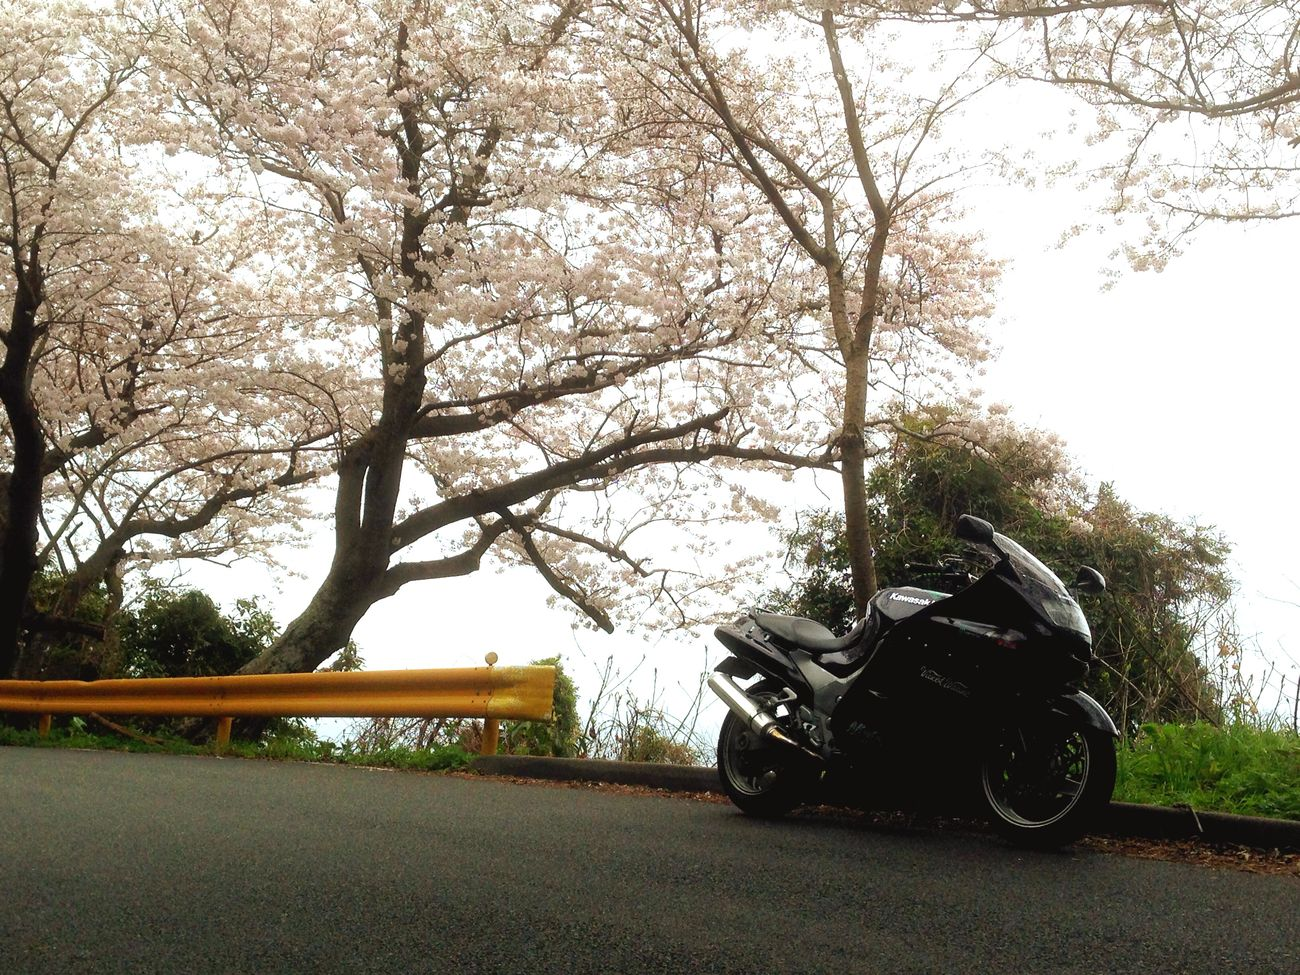 Hugging A Tree サクラ Cherry Blossoms Getting In Touch Moto Life Tears Springtime Wonderful Day Enjoying Life